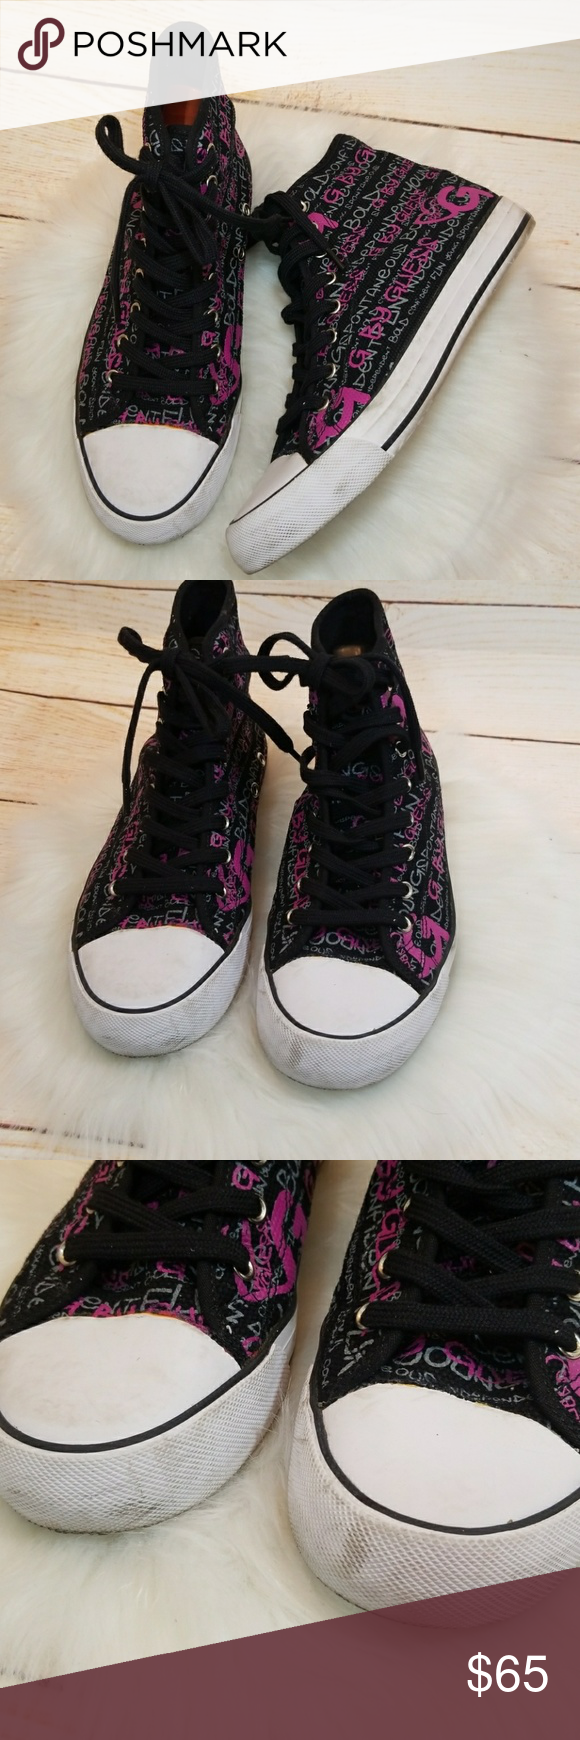 RARE Guess high top converse style graffiti shoes size 8.5